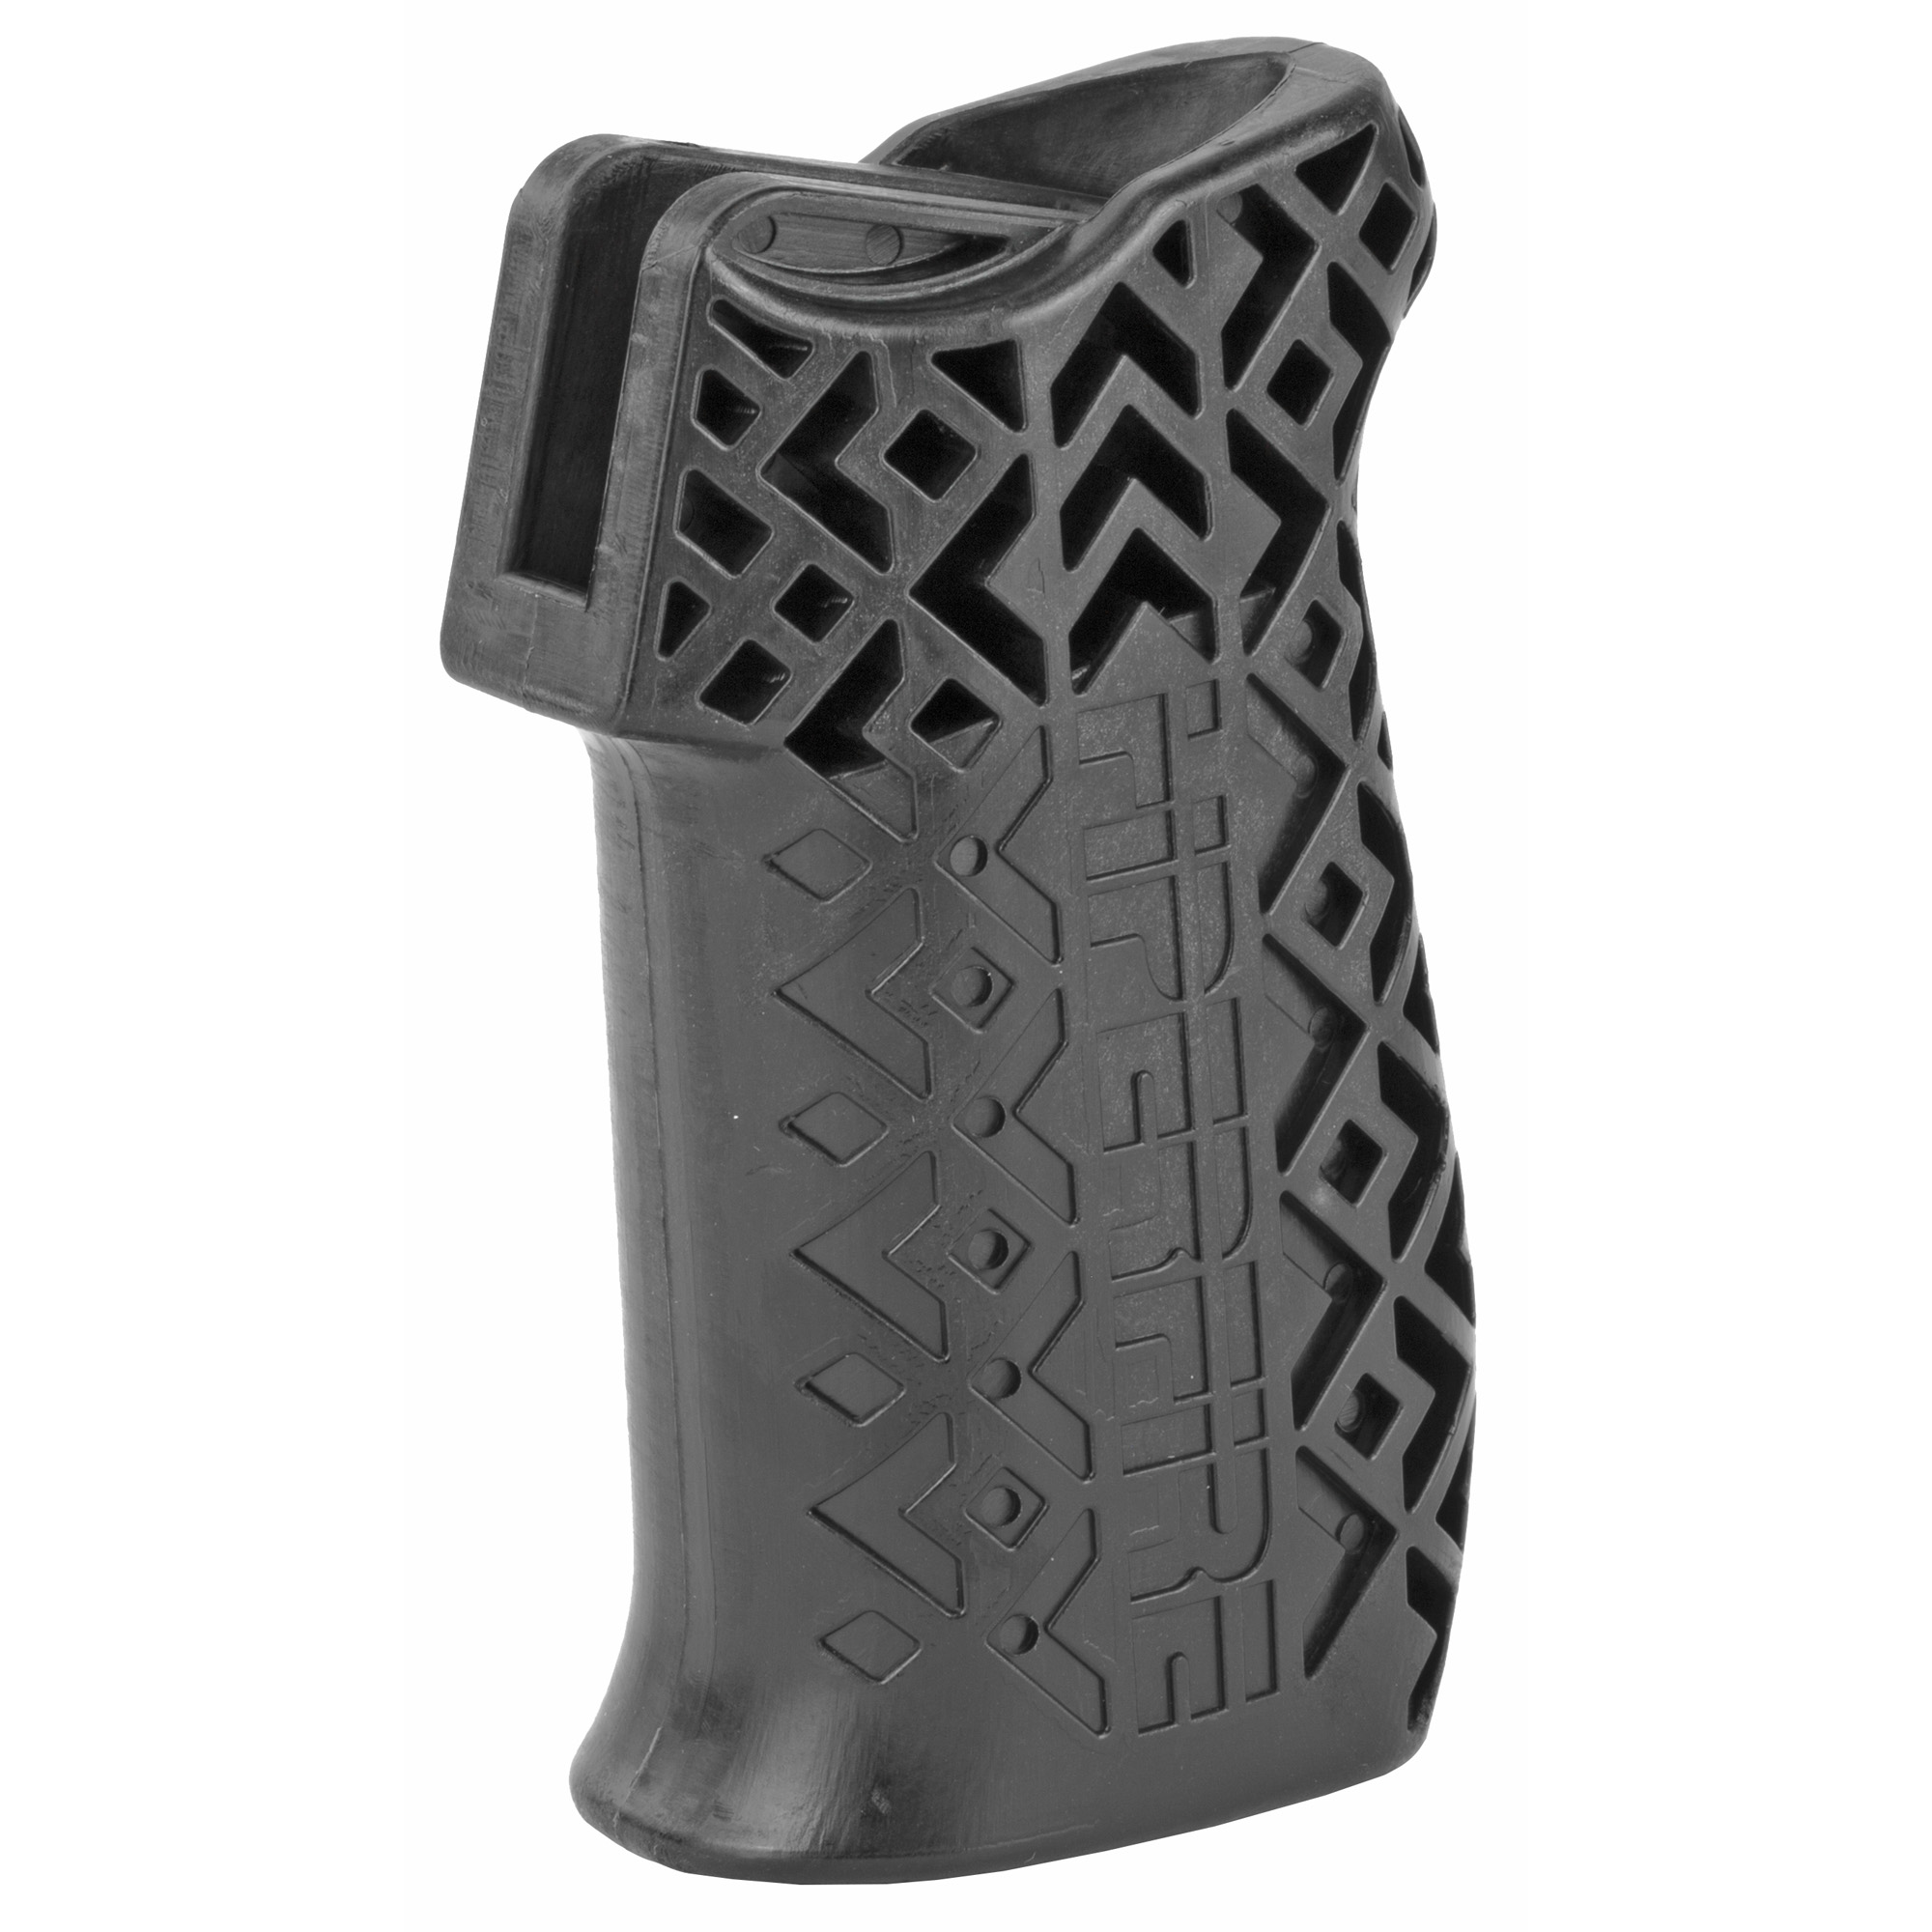 This Hipergrip is a high performance MSR pistol grip. It is truly ergonomic for superior rifle control. Fits AR-15/AR-10.